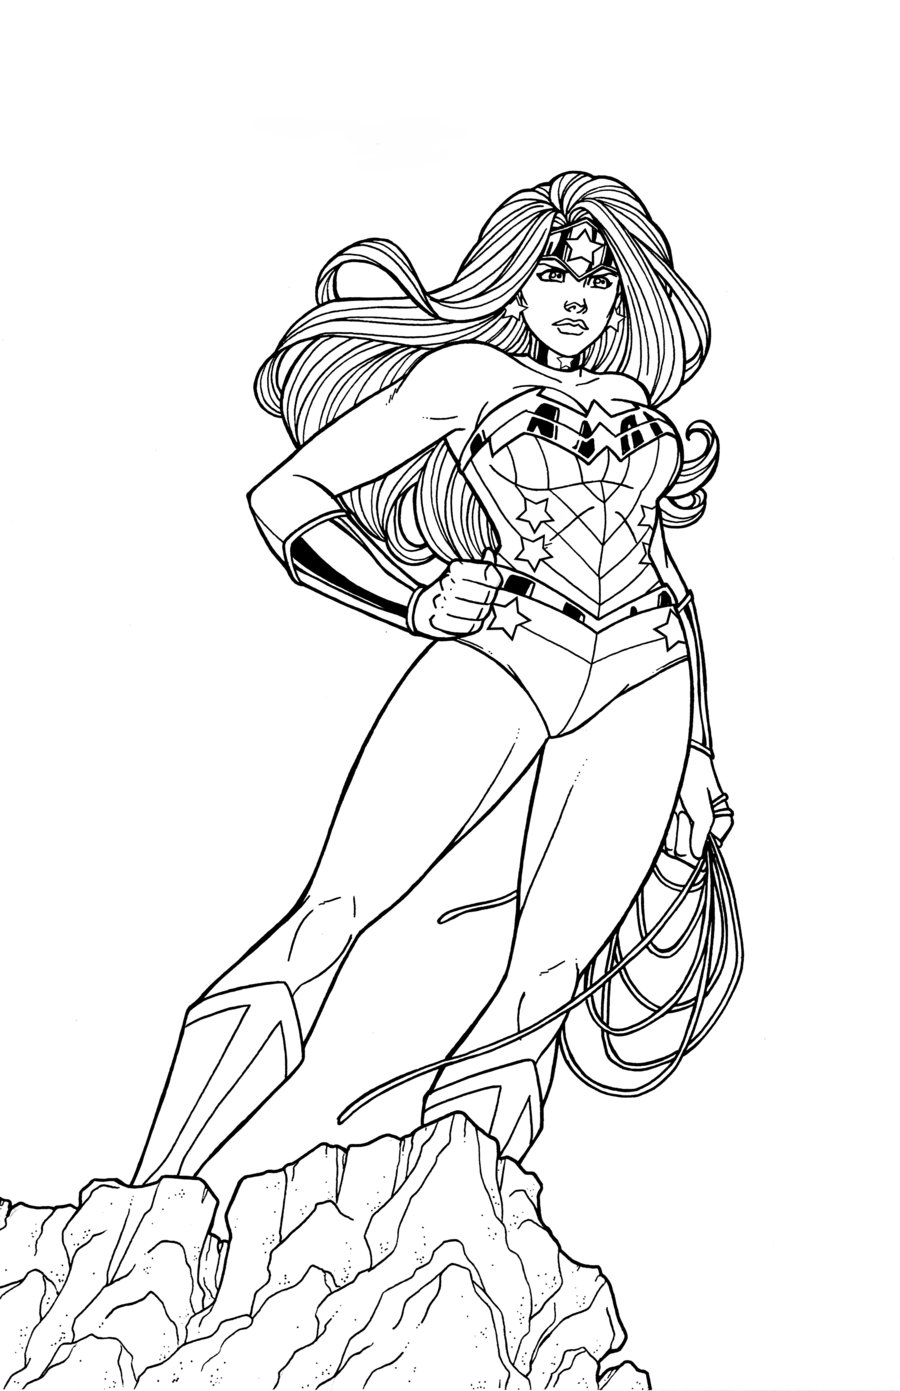 Clip Art Wonderwoman Coloring Page wonder woman coloring pages to download and print for free mickey mouse musketeer pages